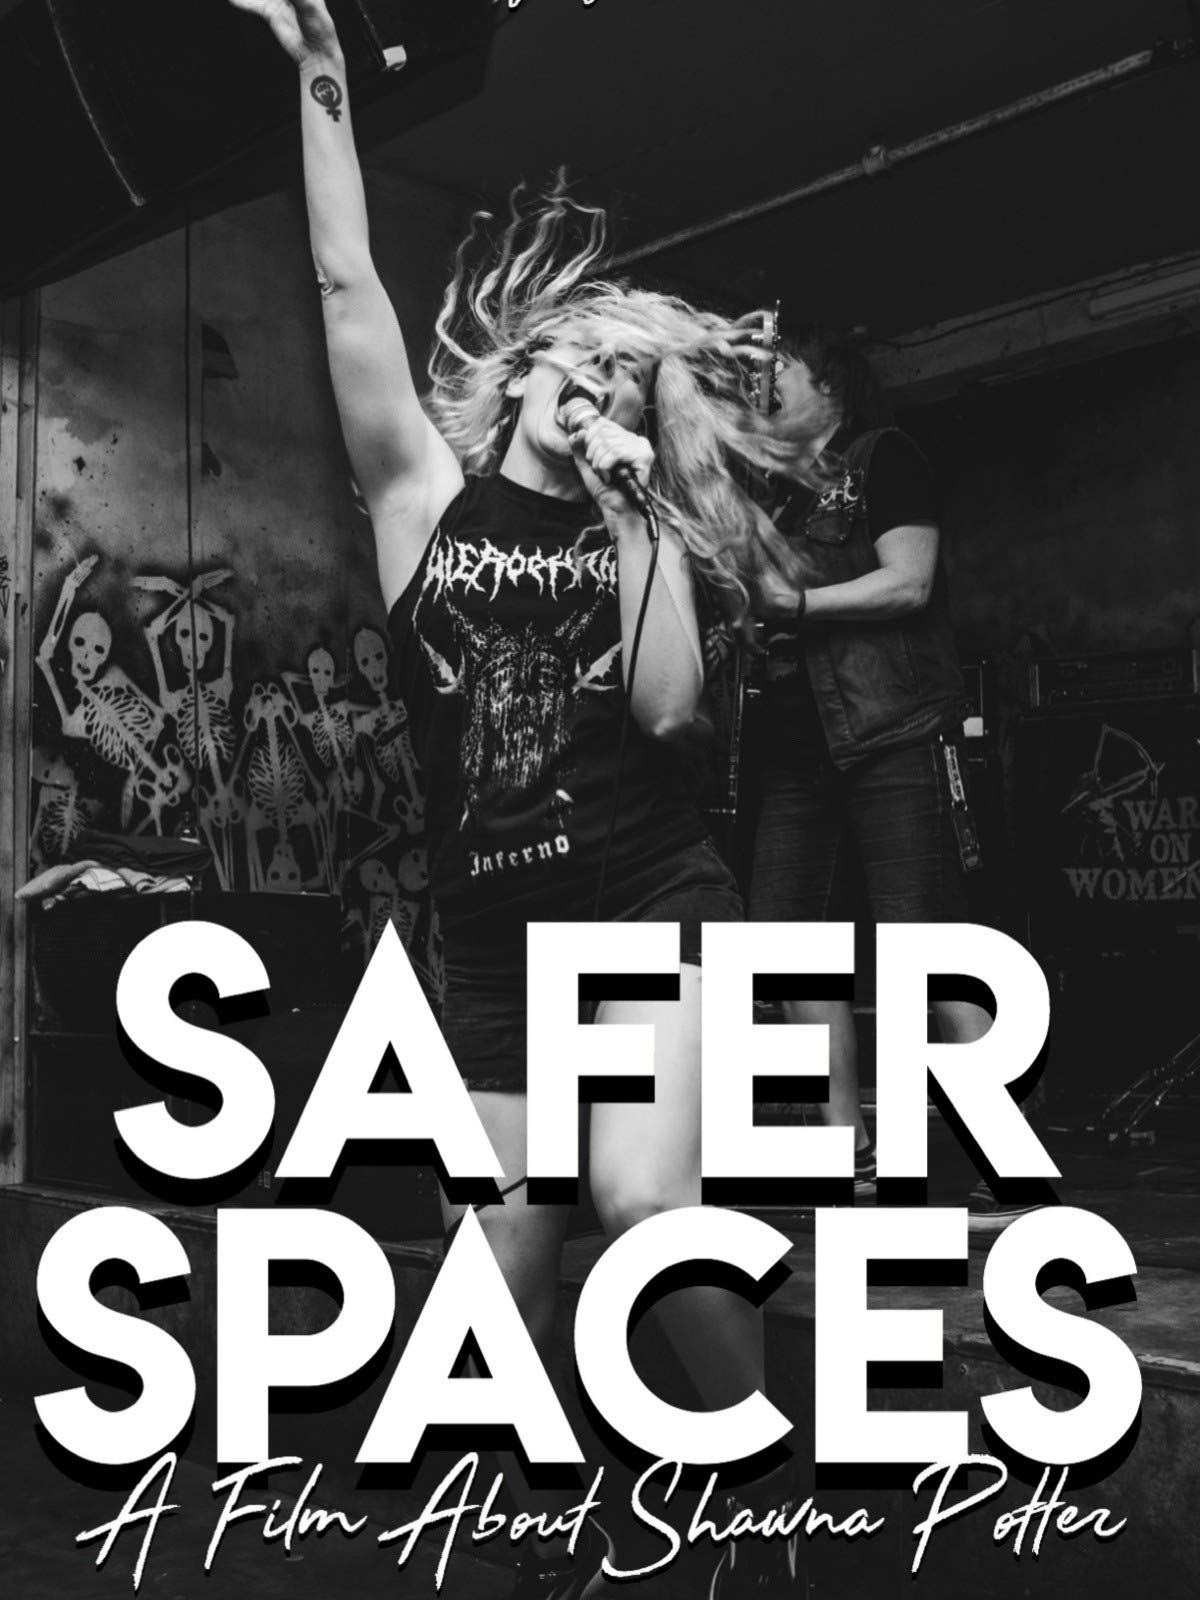 Safer Spaces: A Film About Shawna Potter